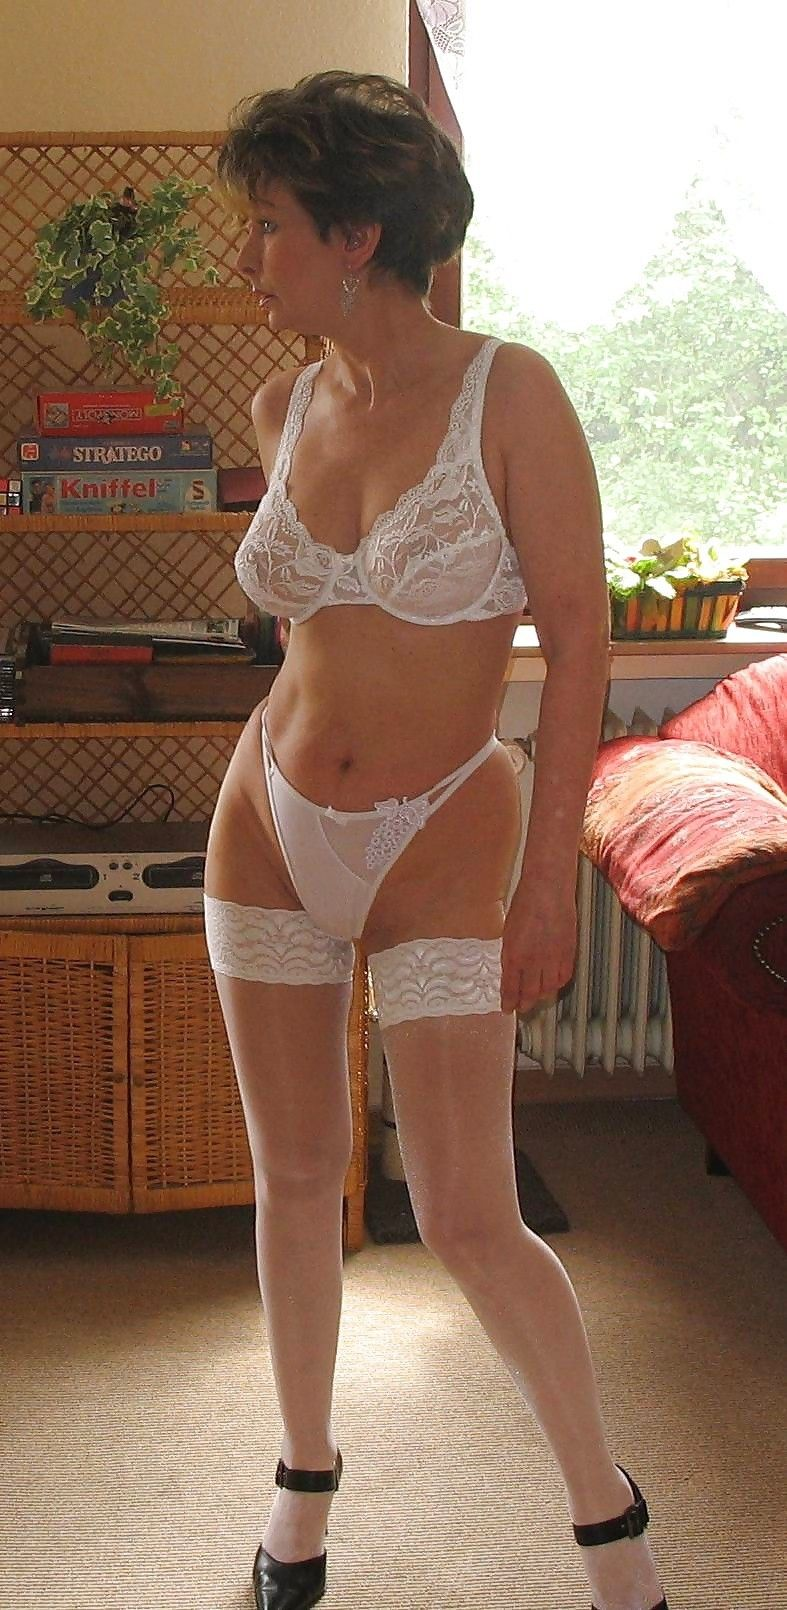 Super hot milf in white lingerie